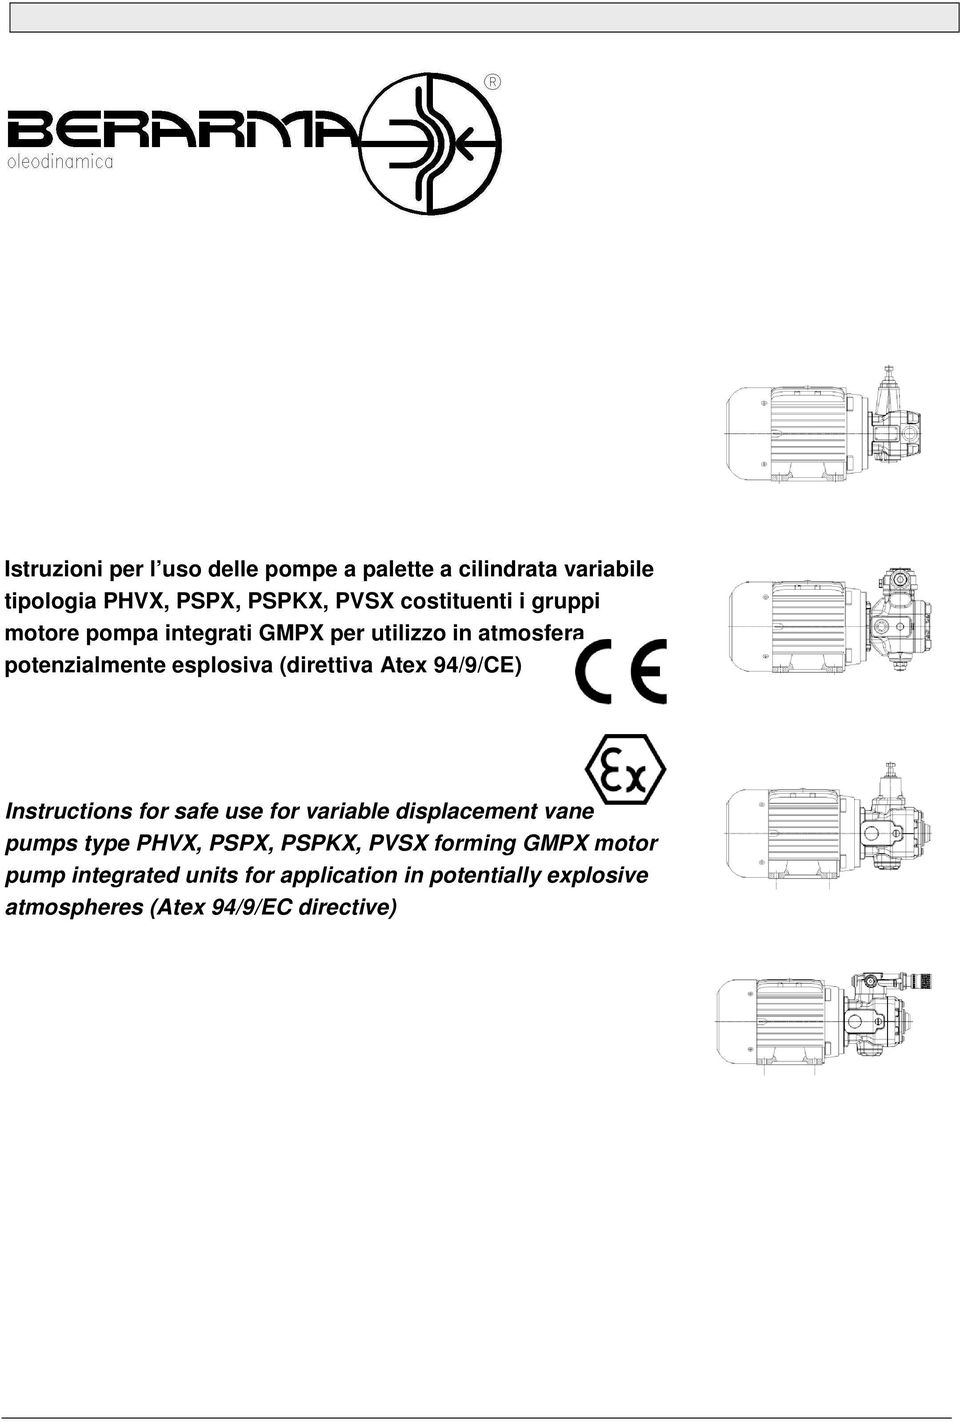 (direttiva Atex 94/9/CE) Instructions for safe use for variable displacement vane pumps type PHVX, PSPX,